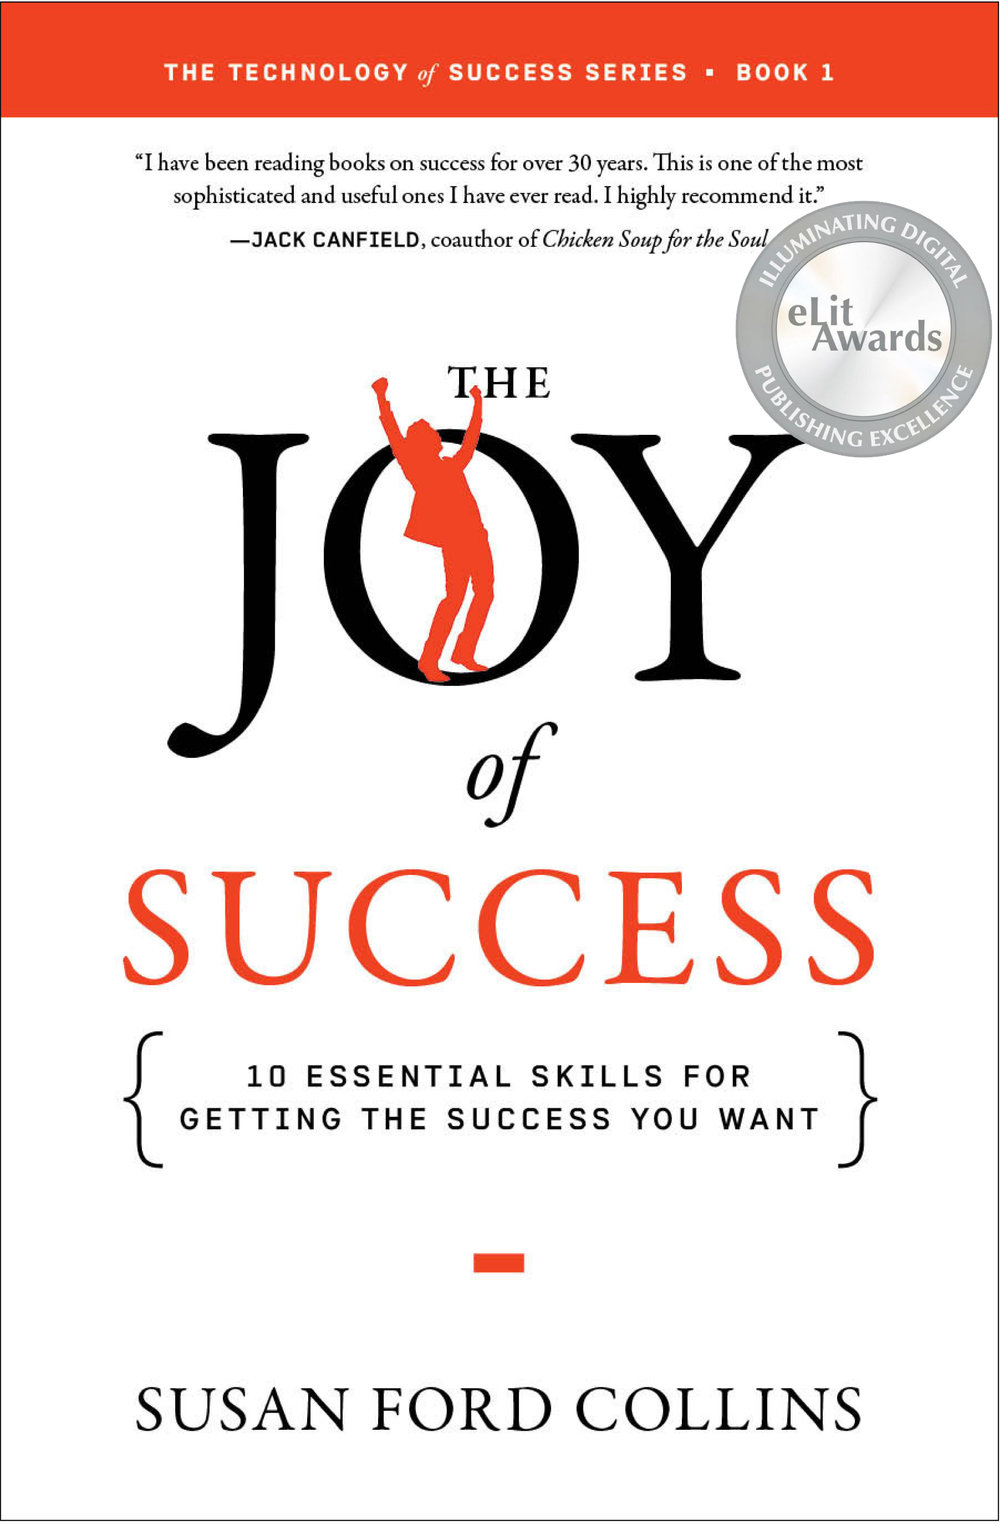 Copy of The Joy of Success by Susan Ford Collins